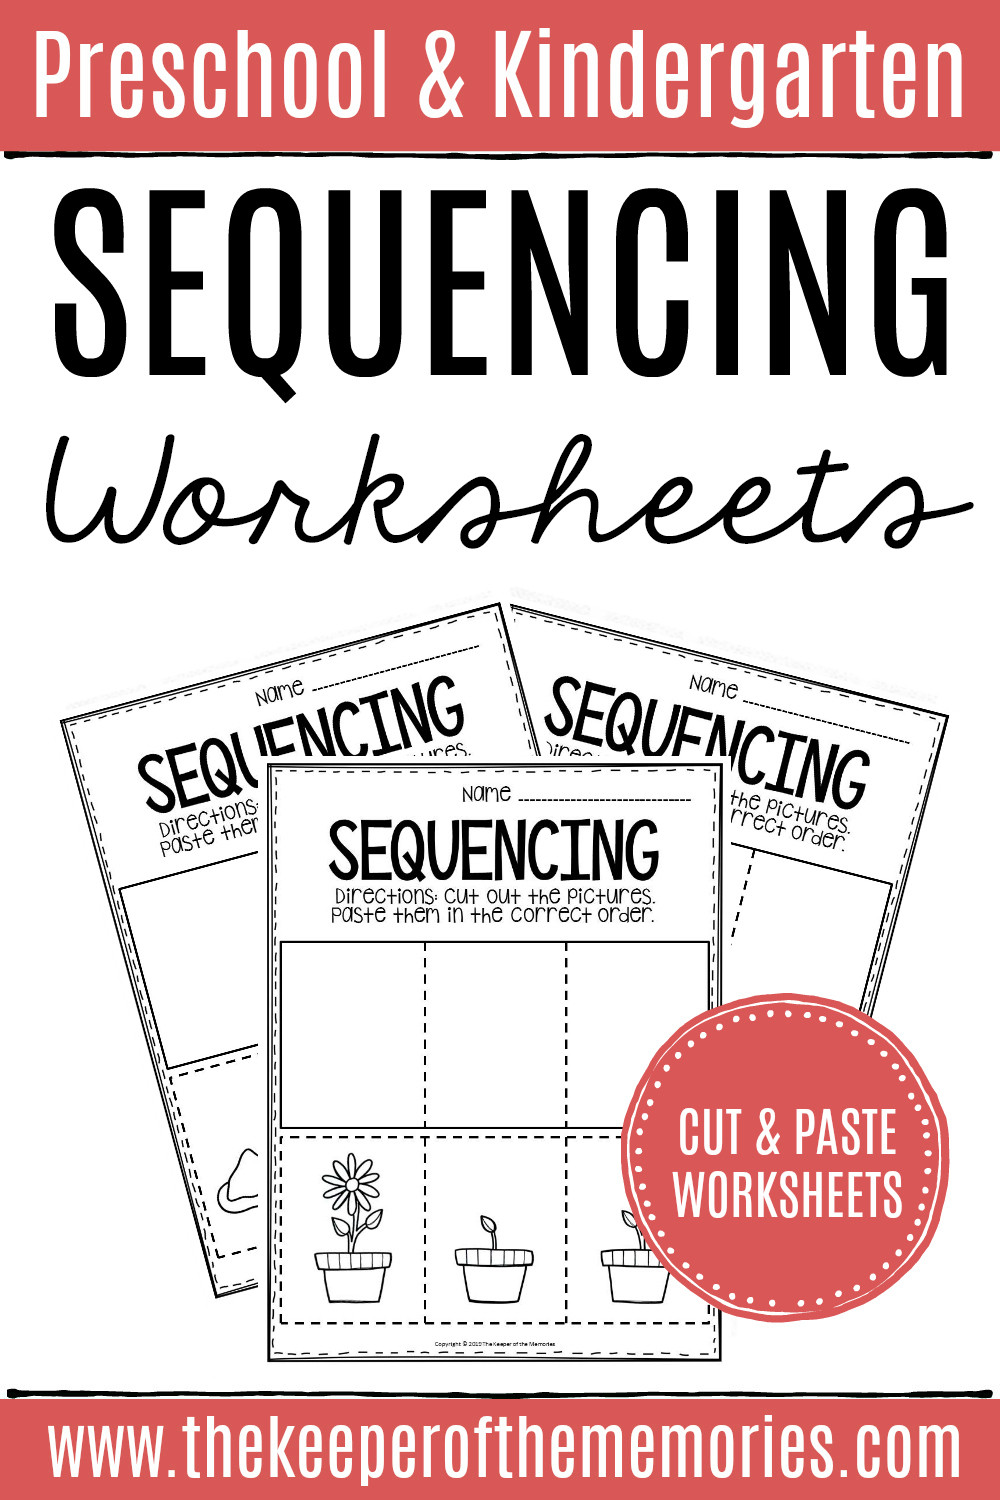 Free Printable Cutting Worksheets 3 Step Sequencing Worksheets the Keeper Of the Memories